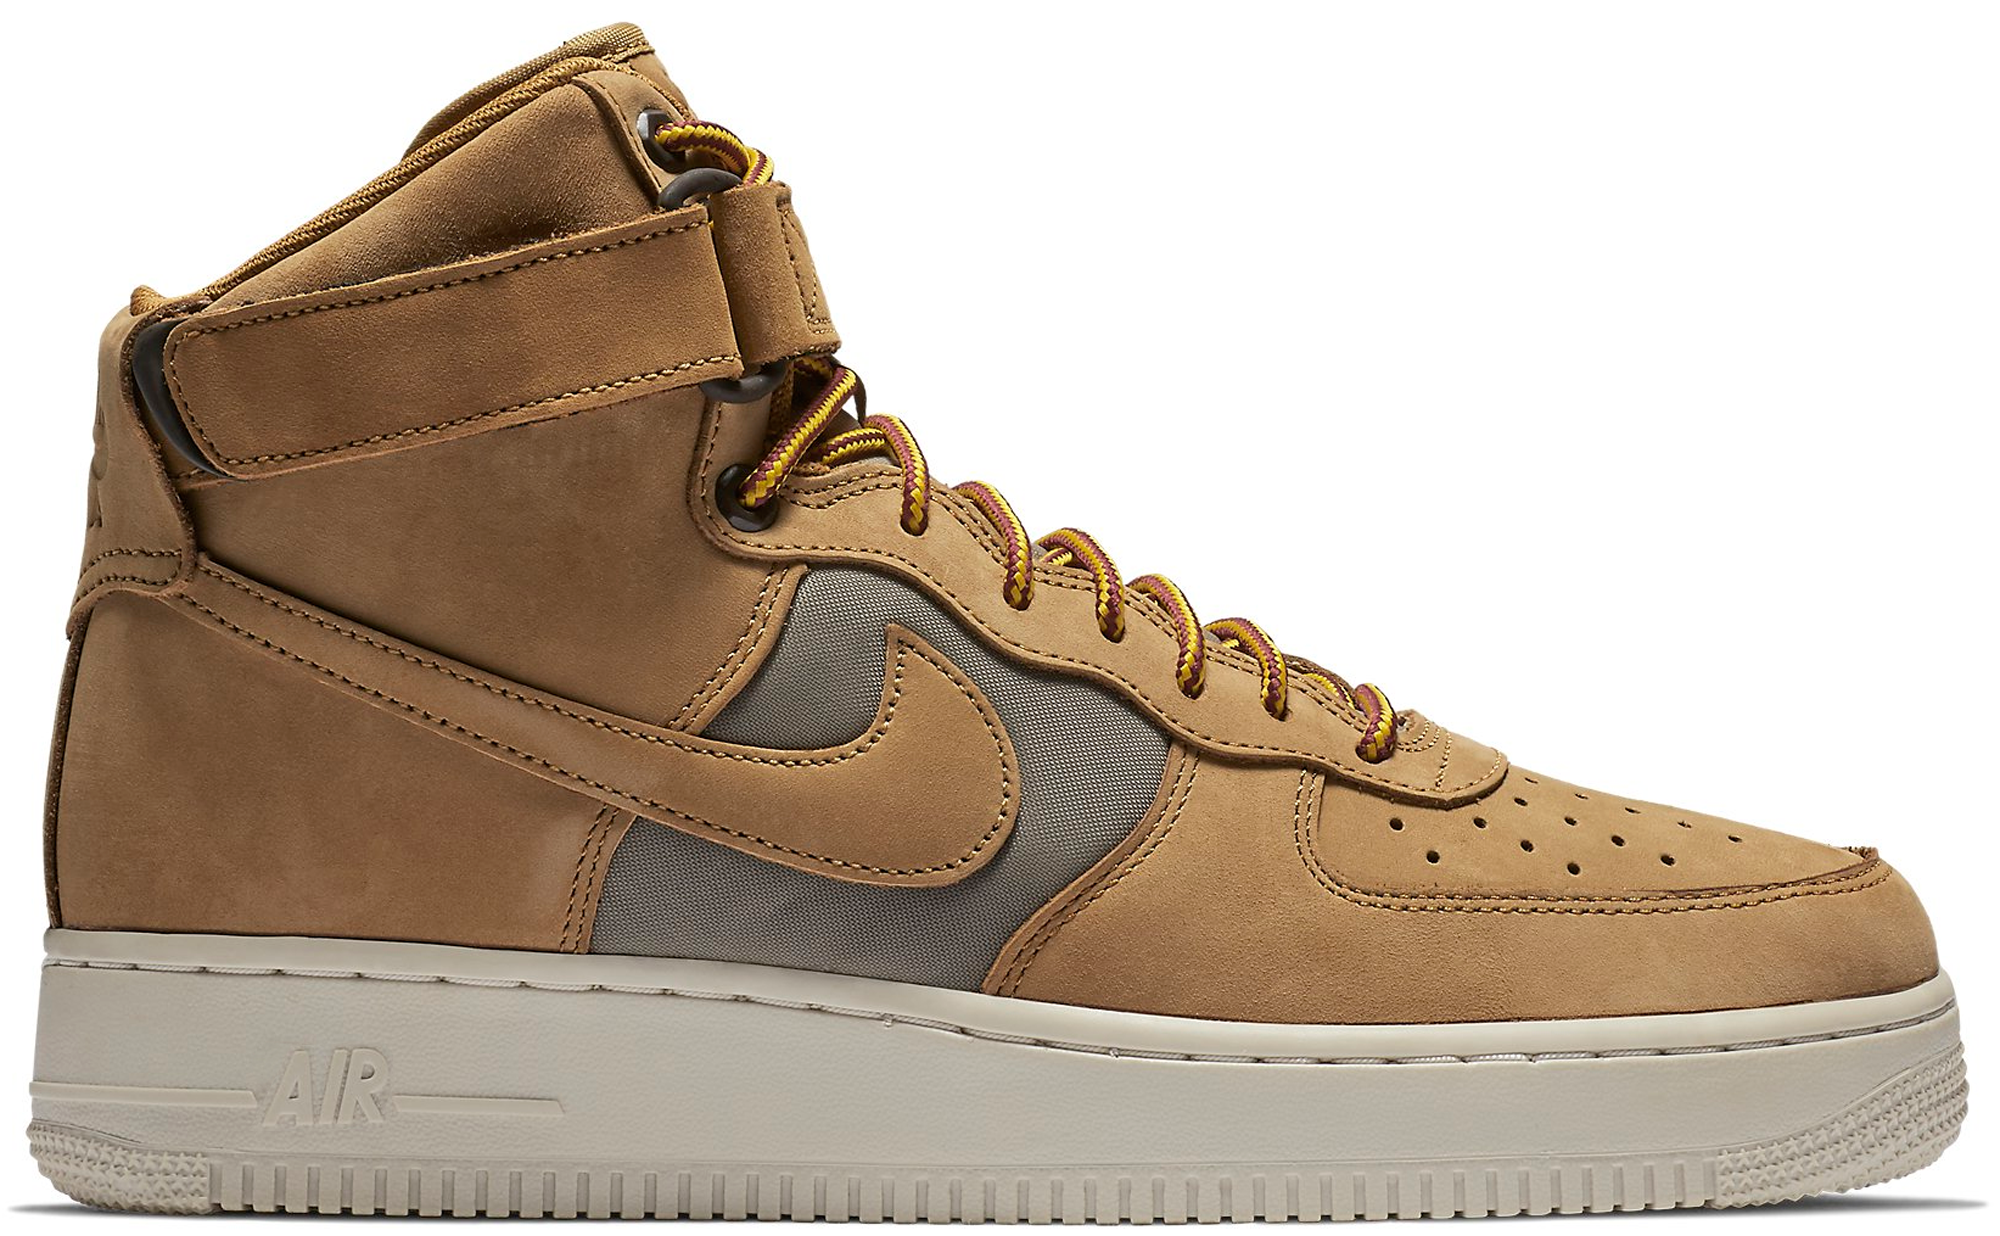 Air Force 1 High Premier Beef and Broccoli Pack Wheat